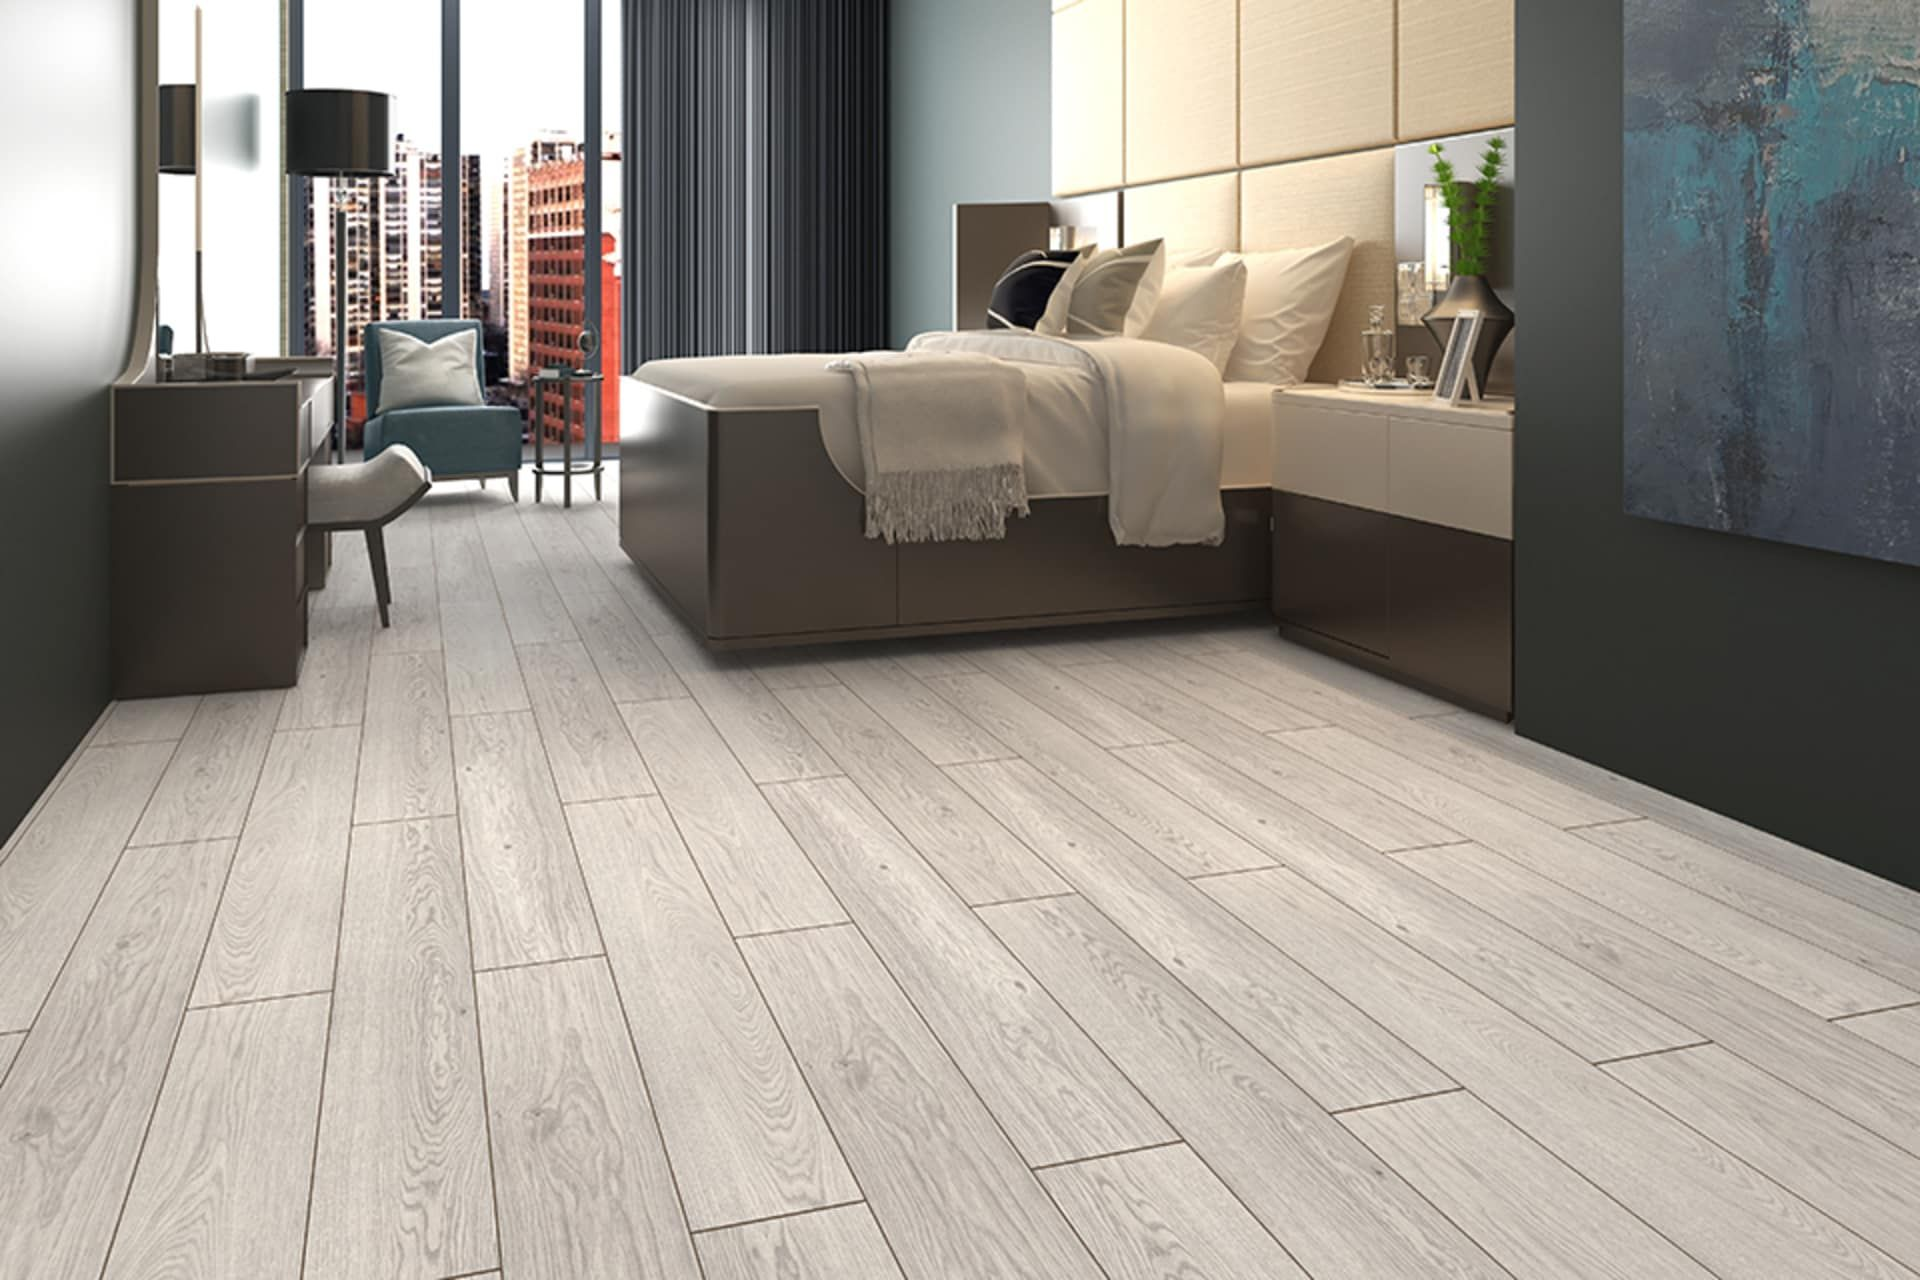 White Laminate Flooring Bedroom in 2020 Oak laminate